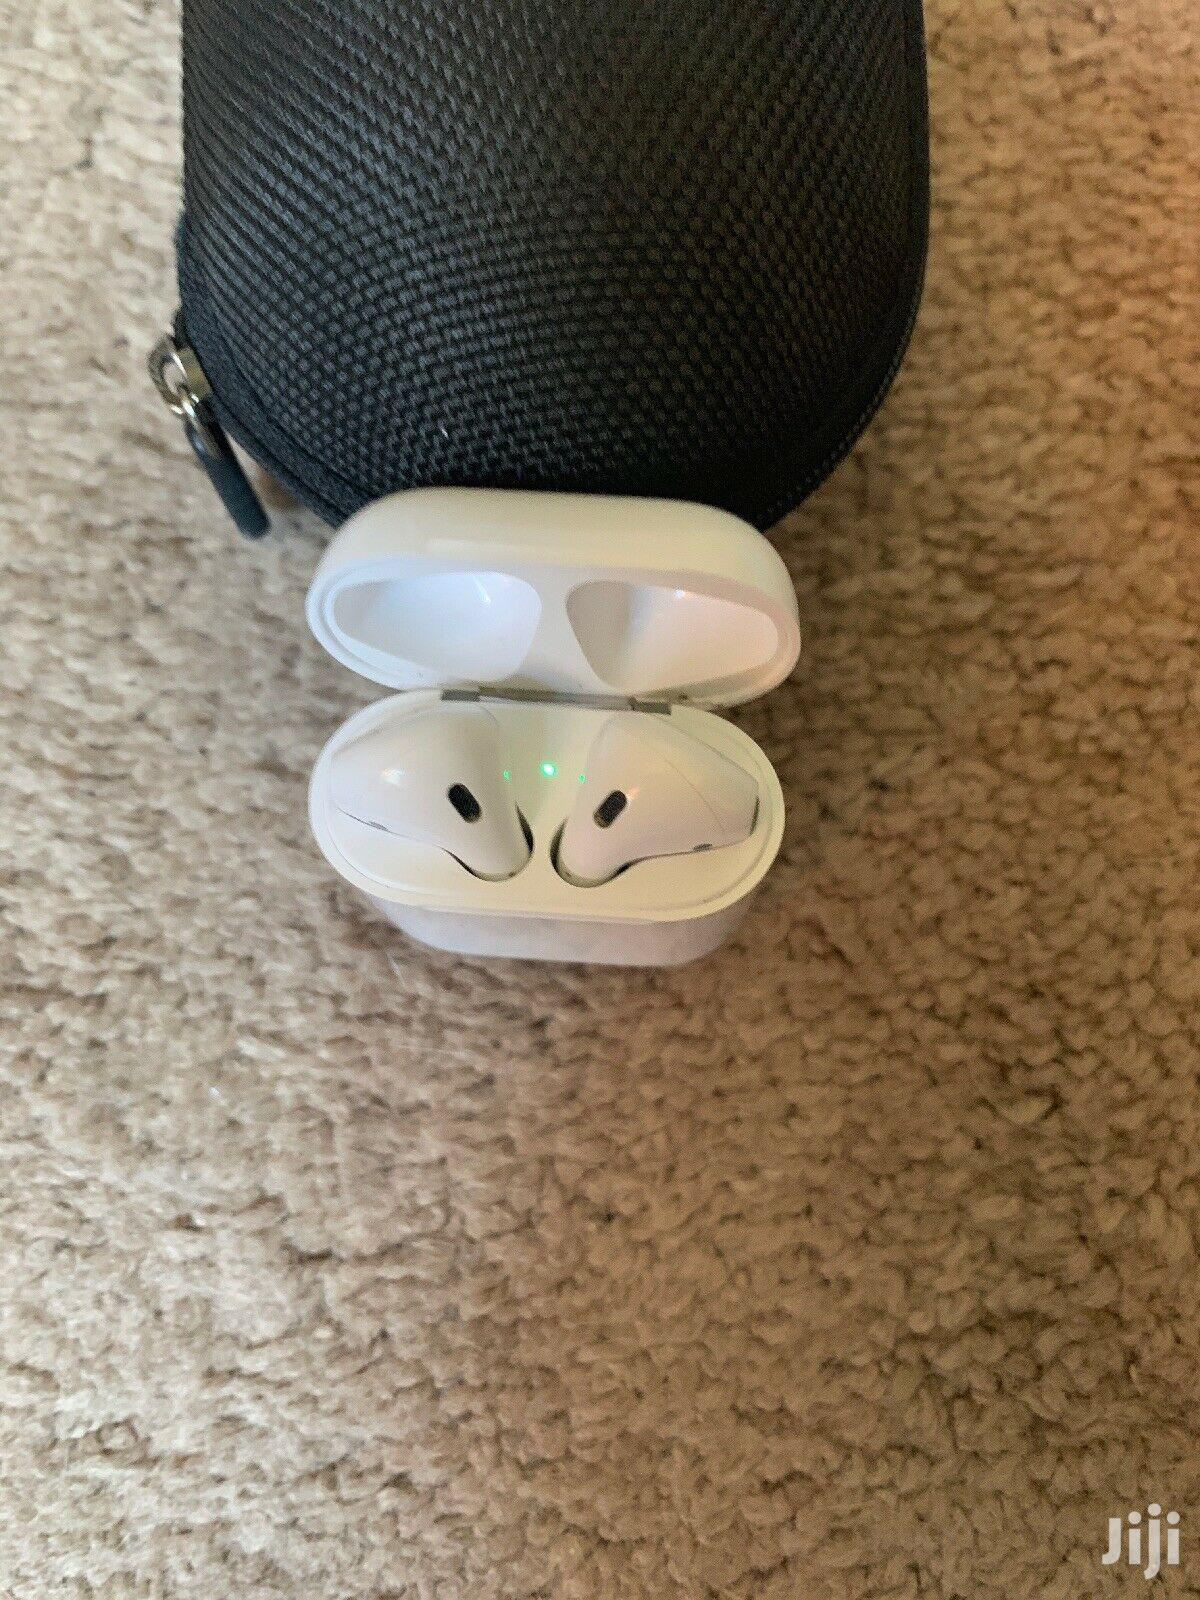 Apple Airpods 1 UK Used | Headphones for sale in Achimota, Greater Accra, Ghana